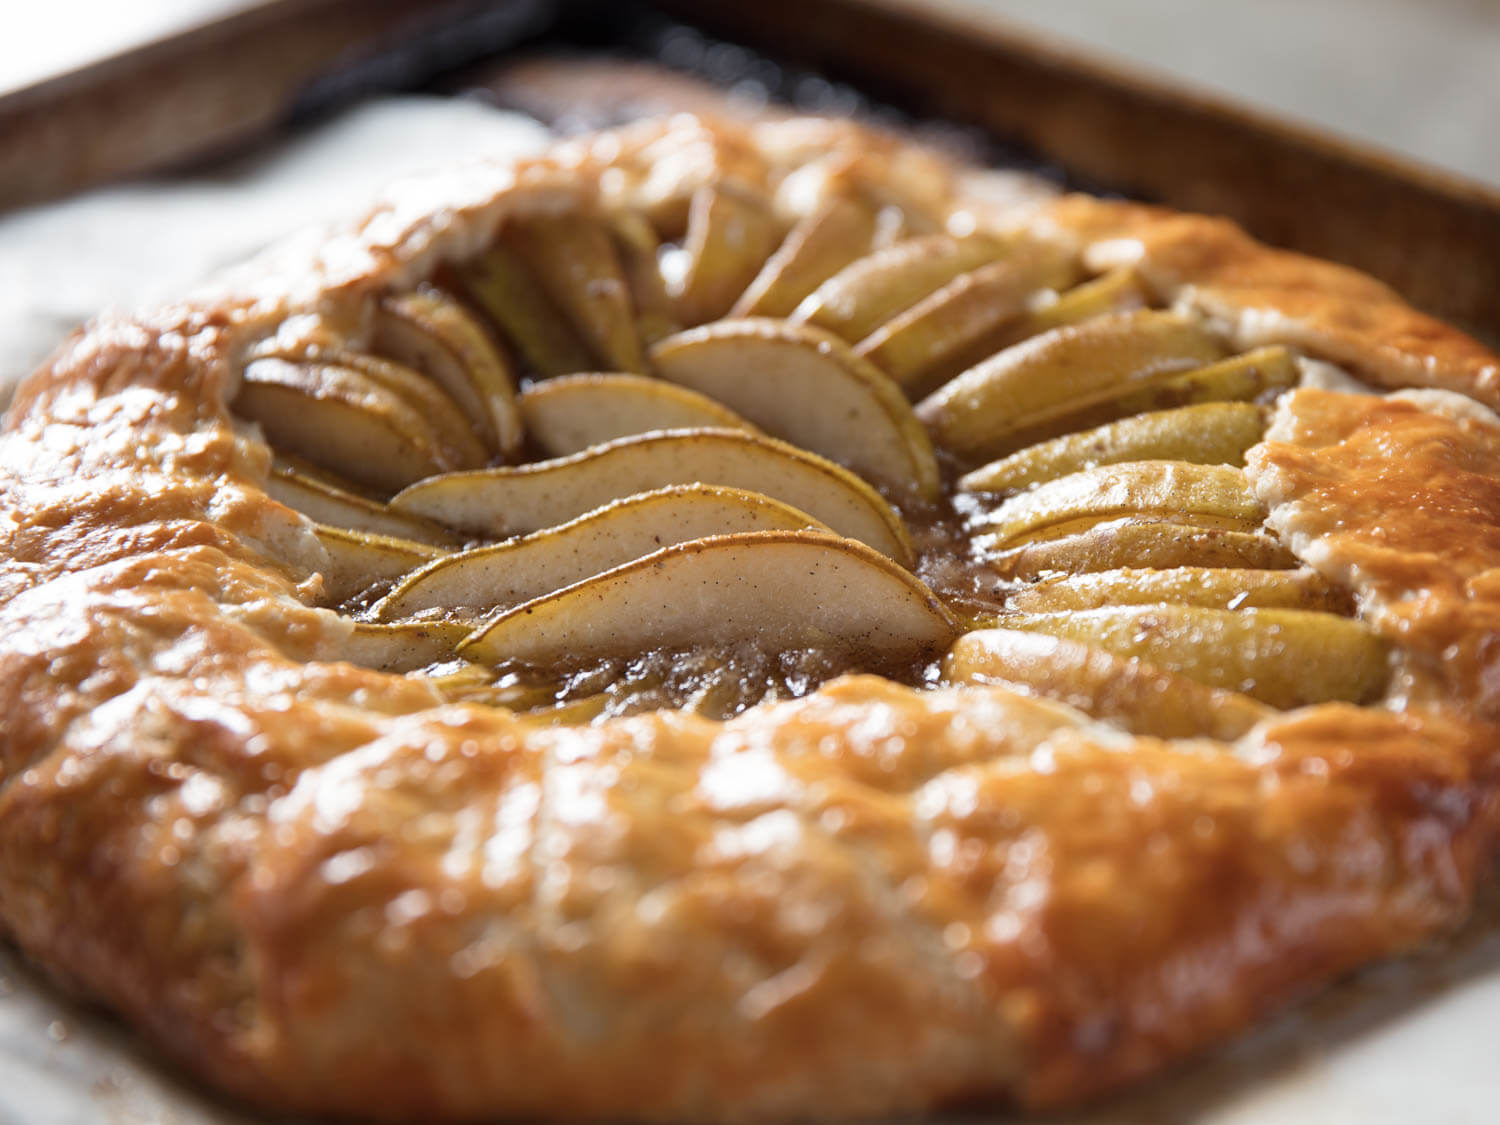 How to Make a Pear Galette With Better Pear Flavor